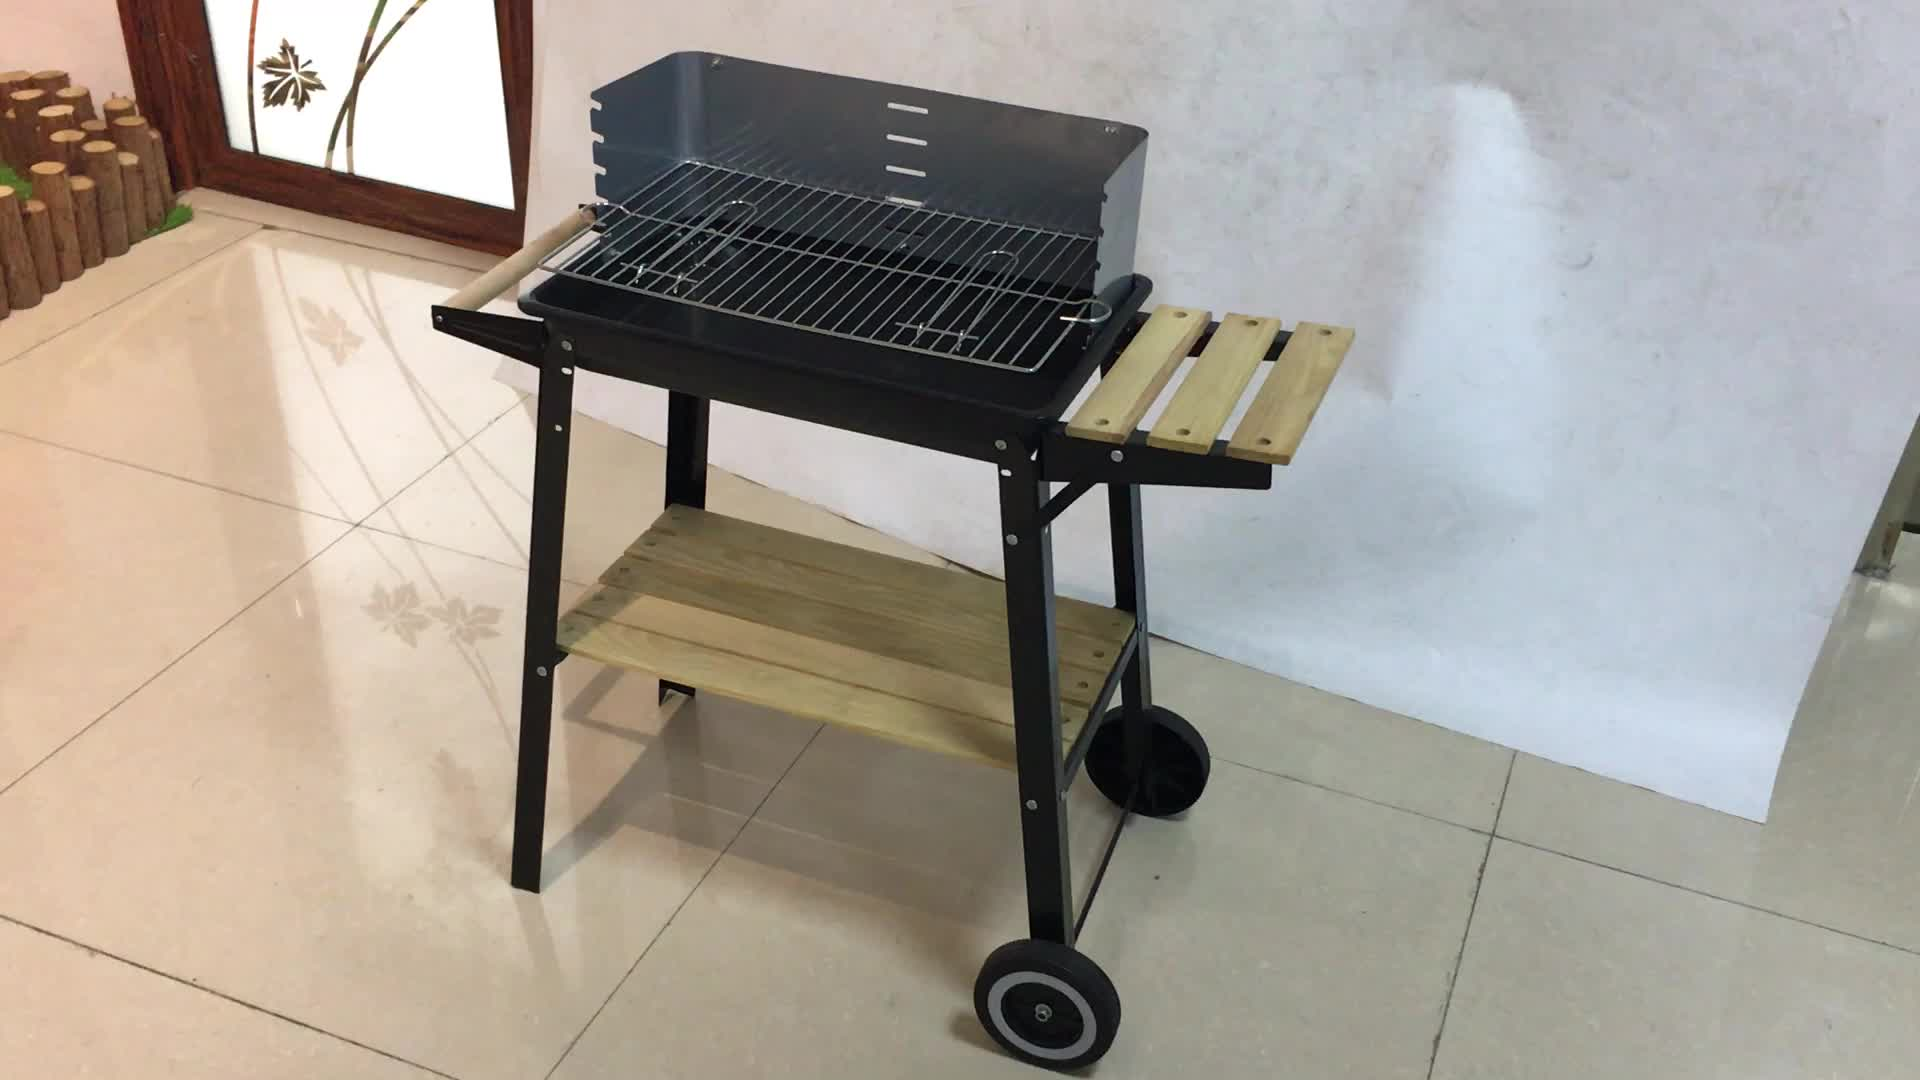 Florabest Bbq Florabest Patio Range Bbq Grill Simple Spit Roast Rotisserie Bbq Grill Buy Rotisserie Bbq Grill Portable Bbq Grill Charcoal Grill With Trolley